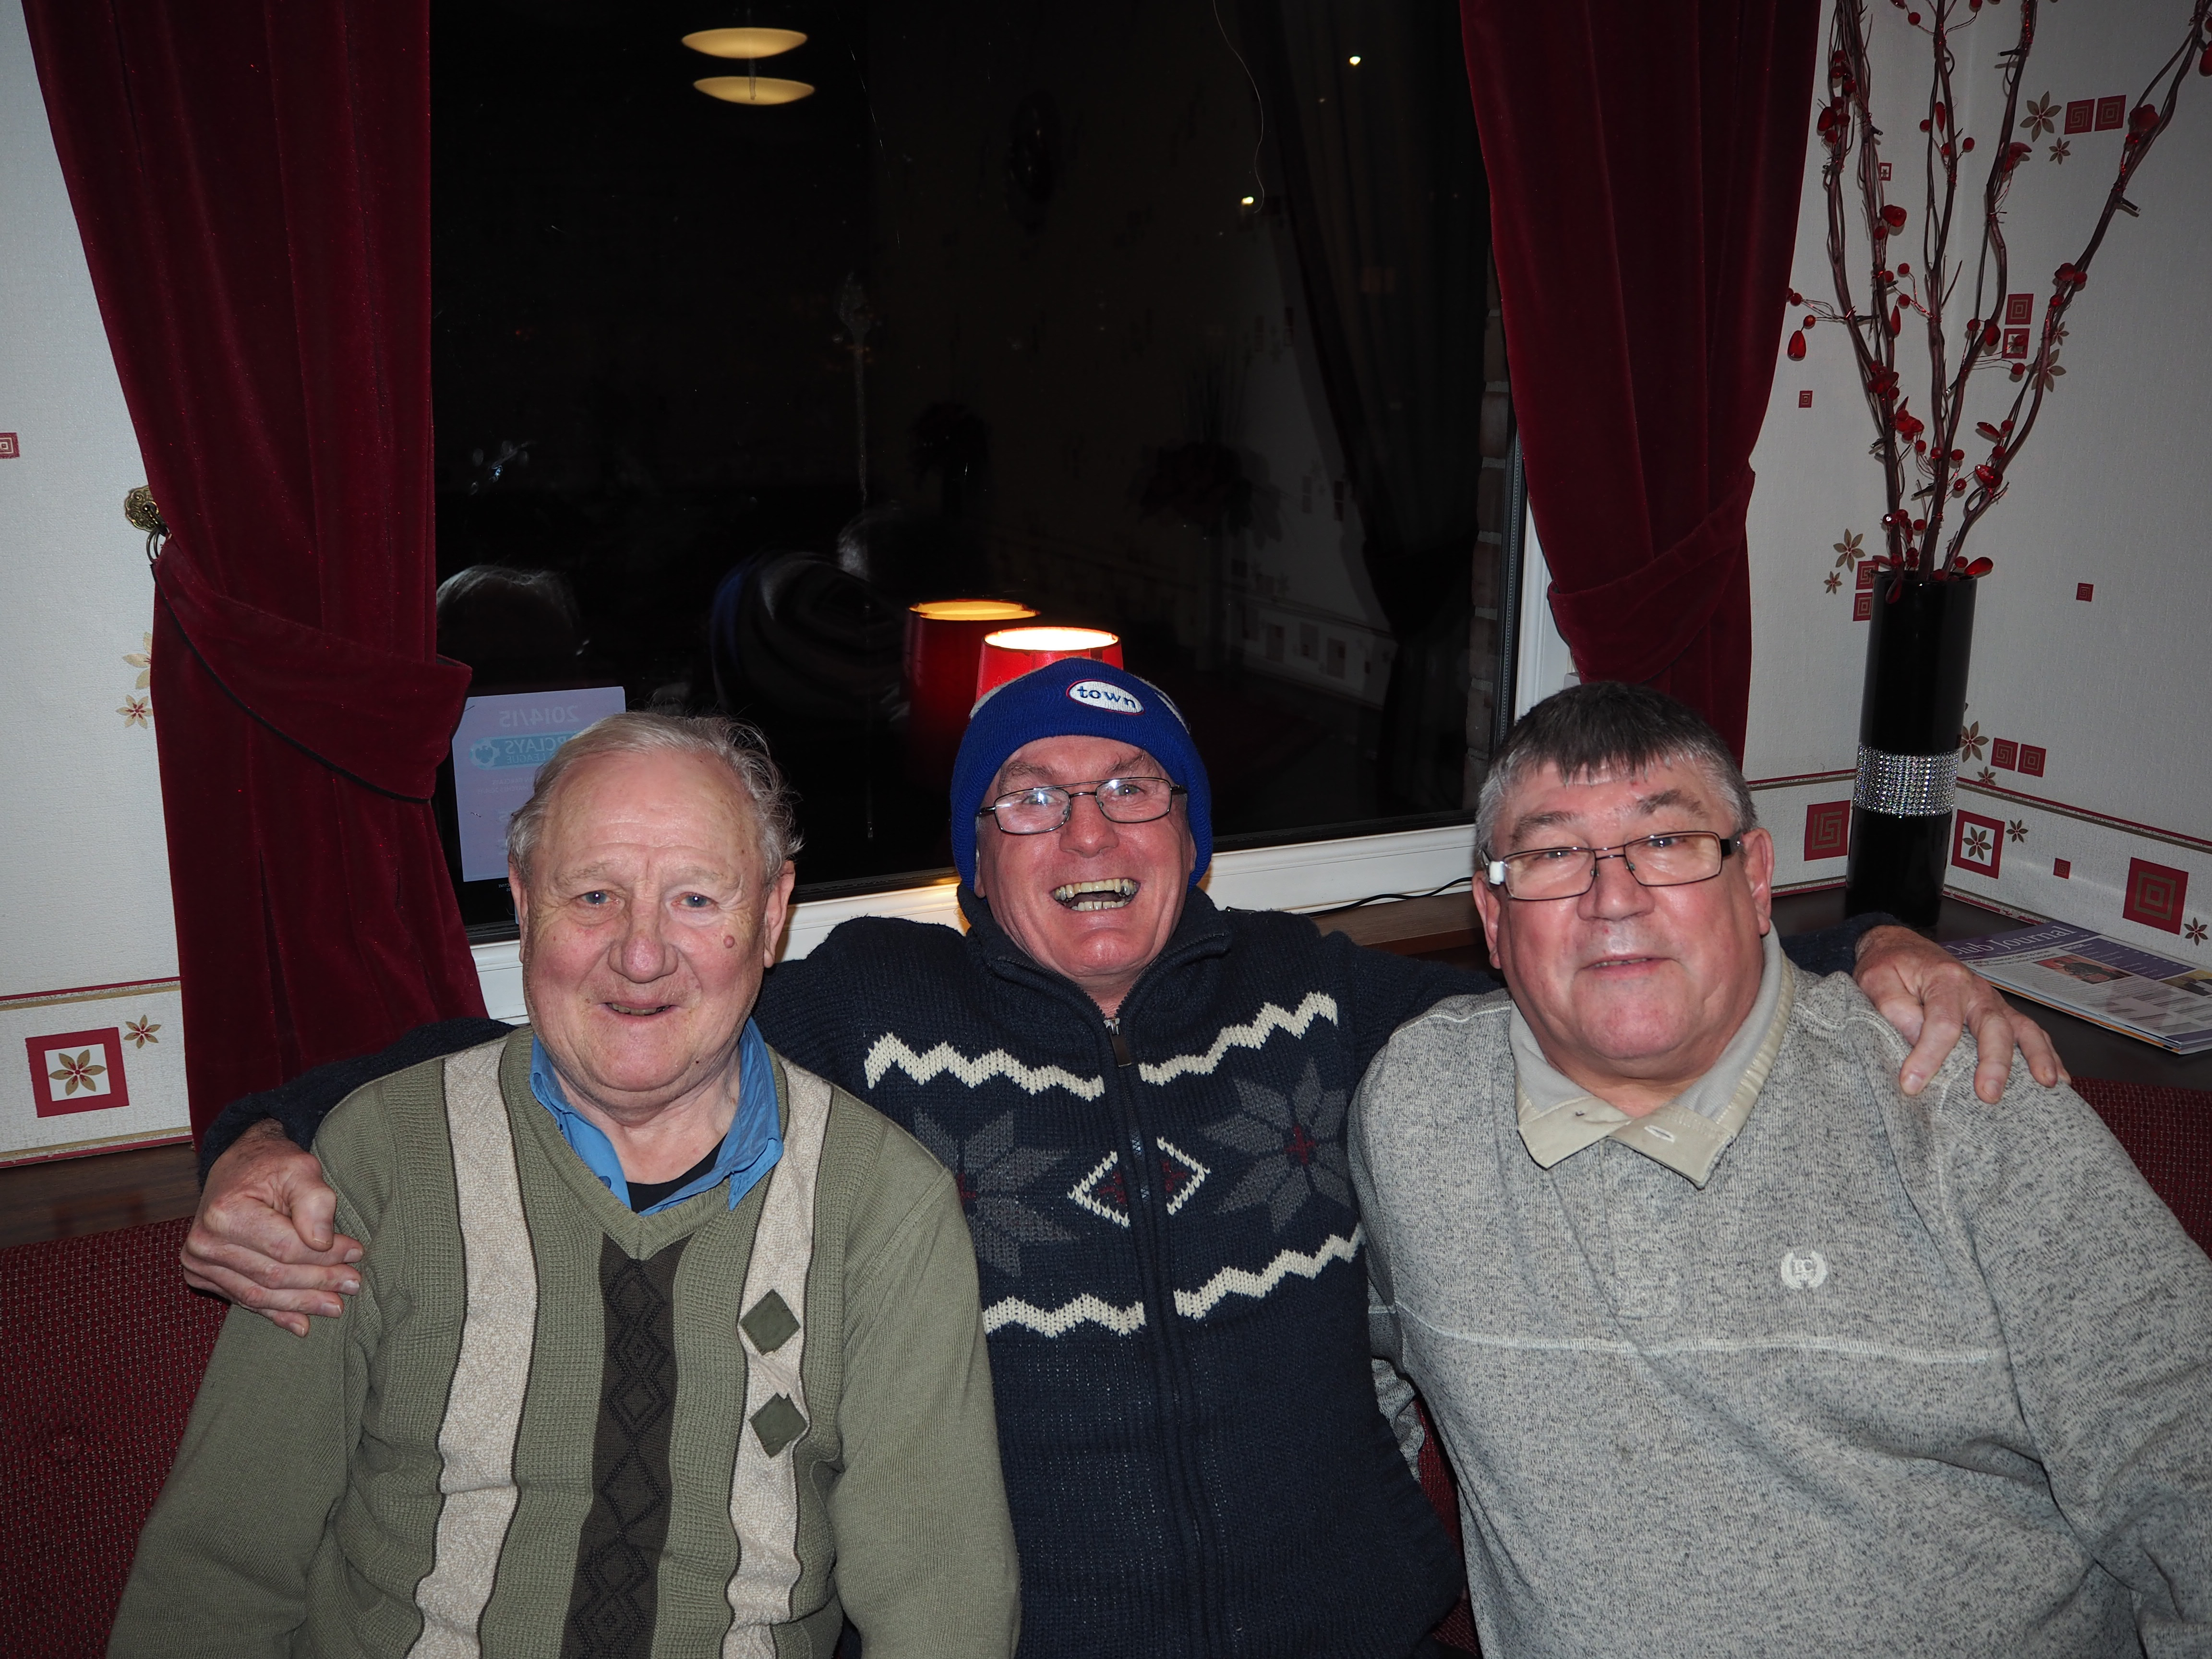 Keith, Peter and Les